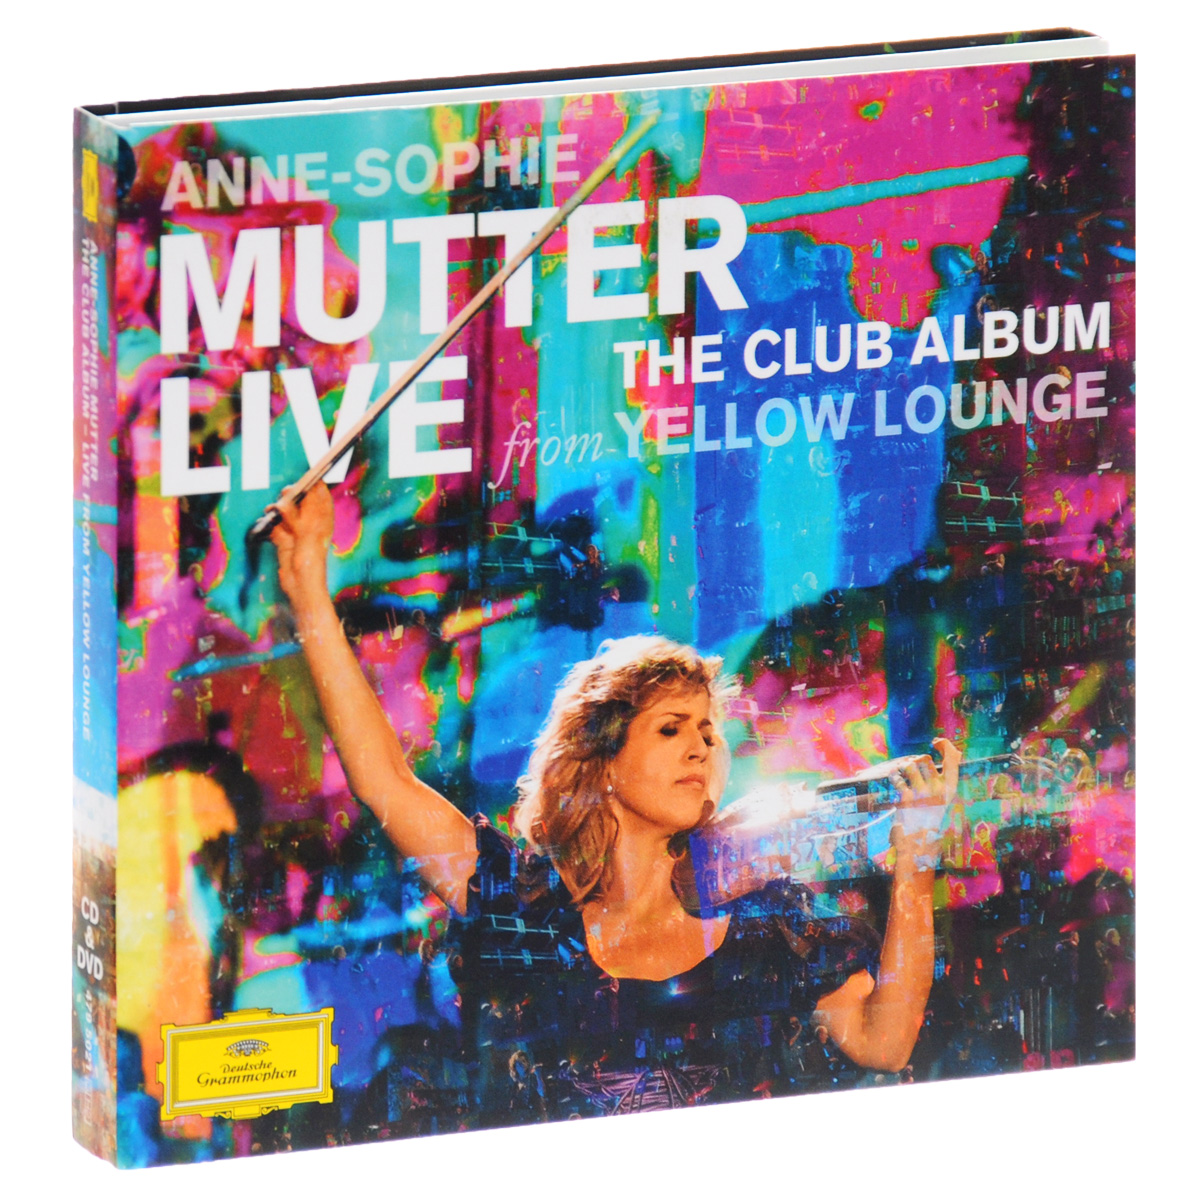 Анна-Софи Муттер,Noa Wildschut,Ламберт Оркис Anne-Sophie Mutter. Live From Yellow Lounge (CD + DVD) анна софи муттер anne sophie mutter mendelssohn cd dvd